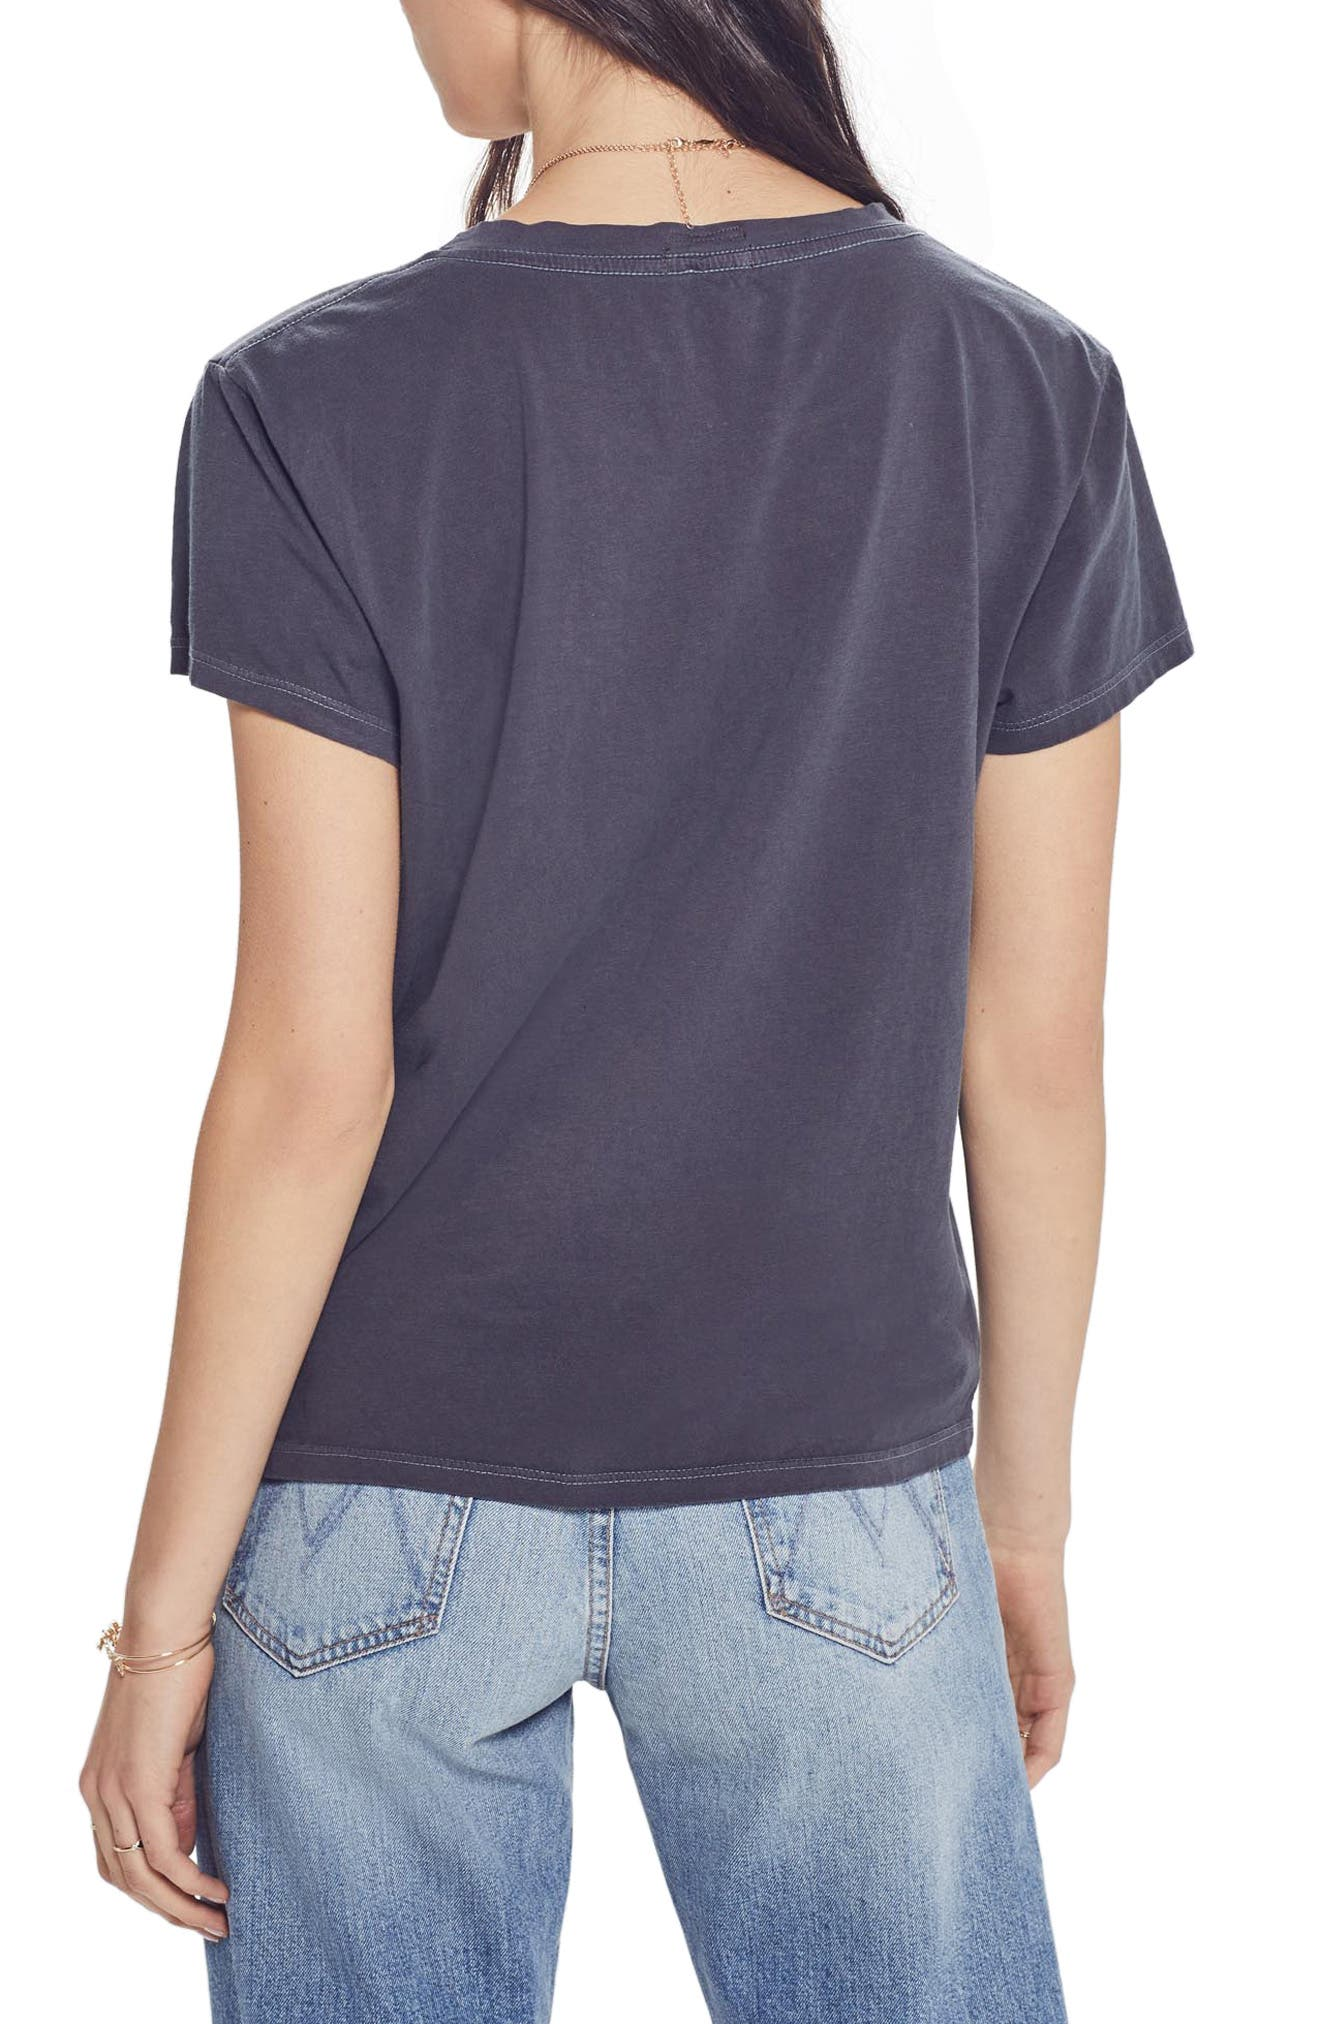 MOTHER, The Boxy Goodie Goodie Supima<sup>®</sup> Cotton Tee, Alternate thumbnail 2, color, 006